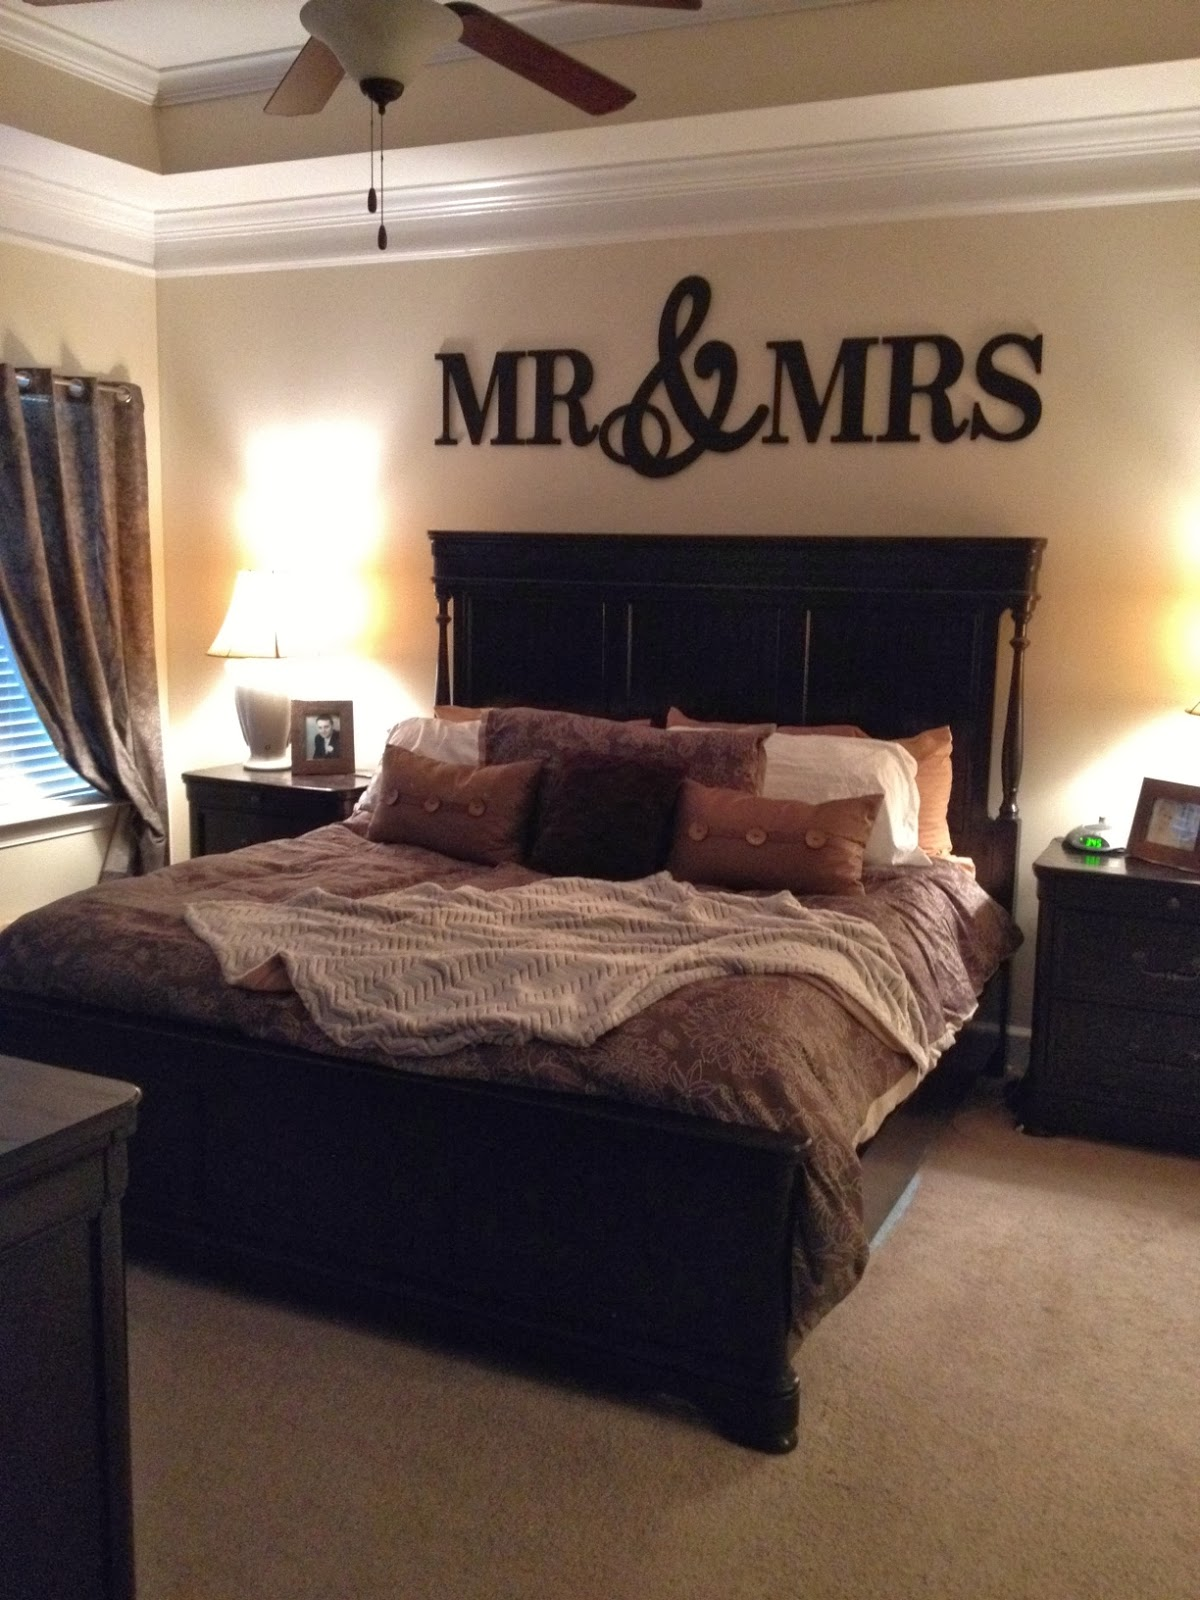 Simply the simmons mr mrs for New master bedroom ideas